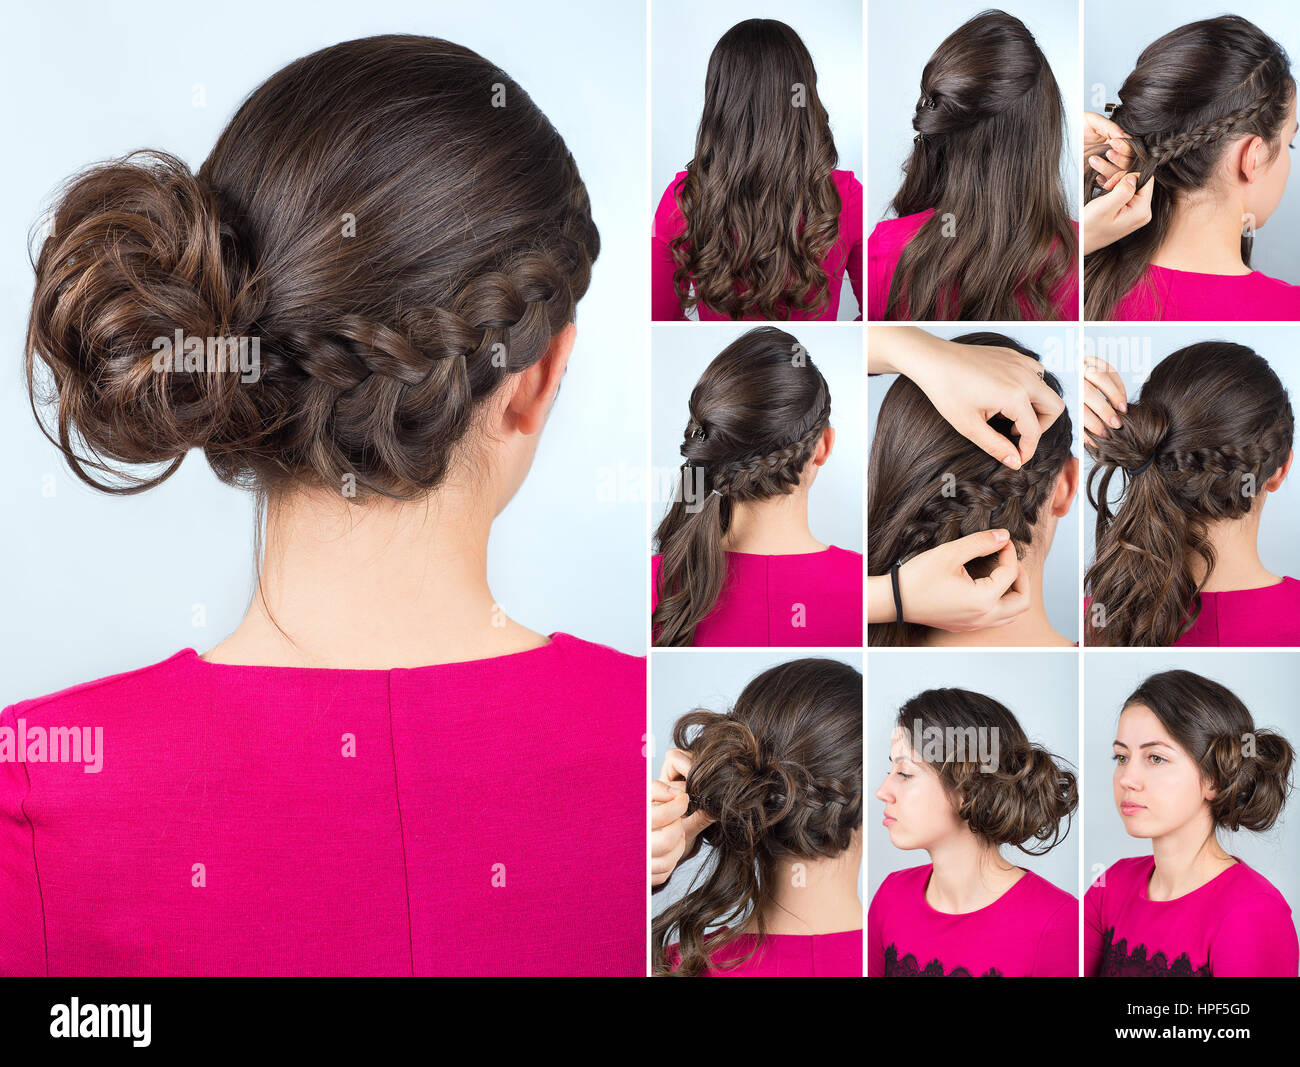 Hairstyle Twisted Bun To One Side And Braid On Curly Hair Hairstyle